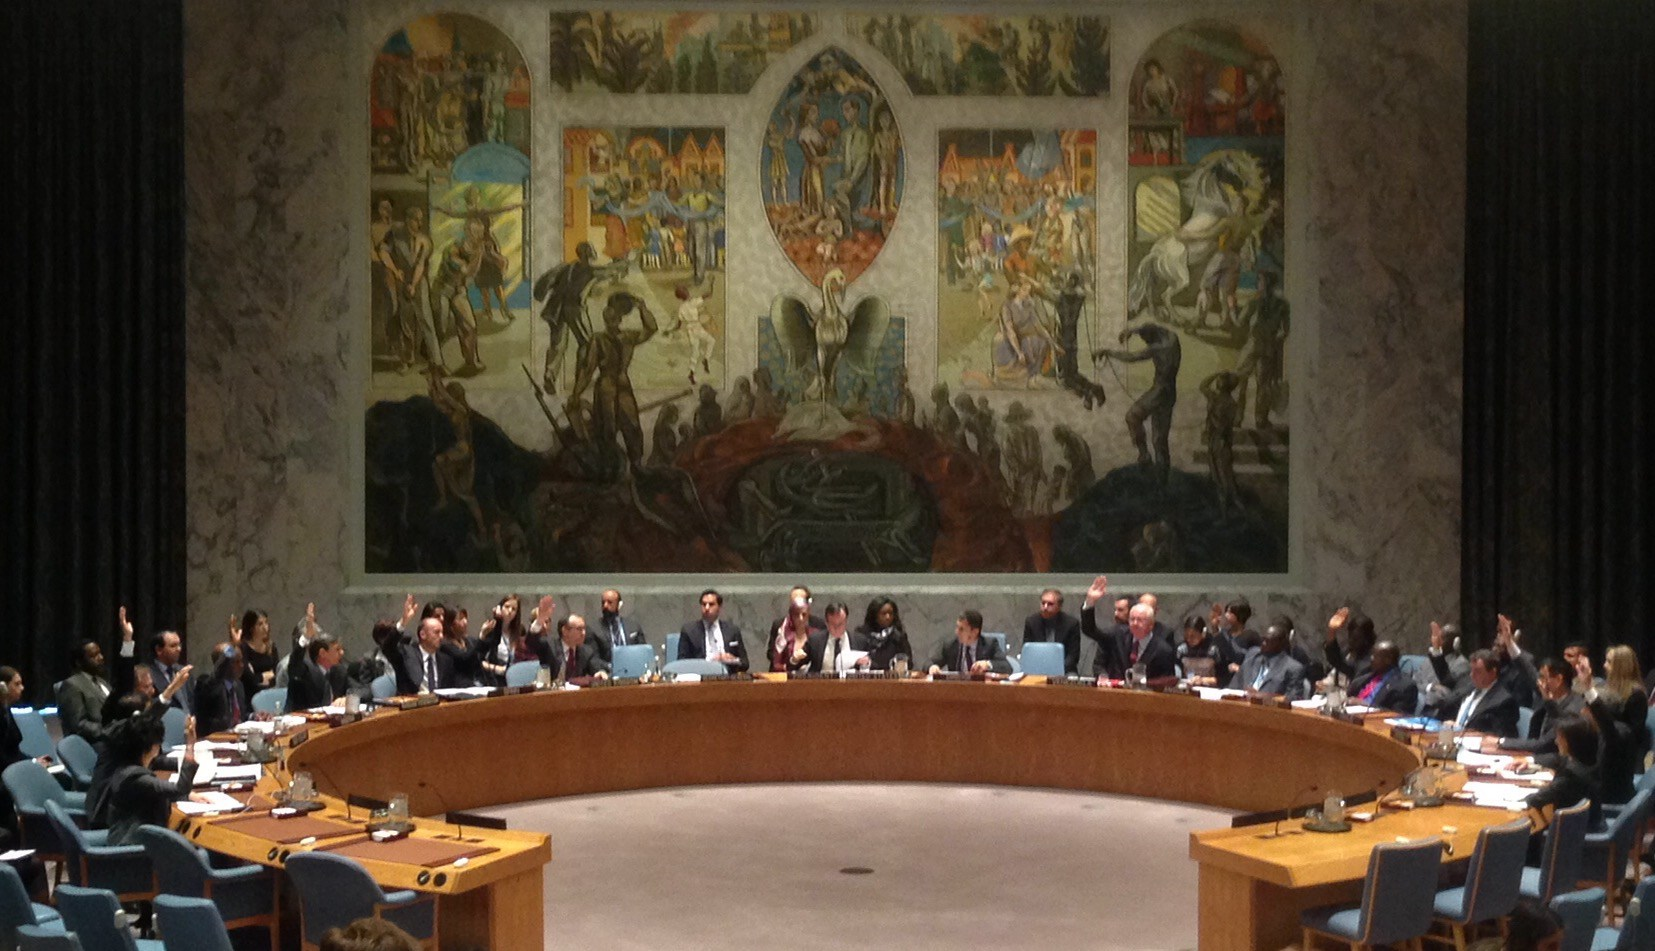 https://www.un.org/youthenvoy/2015/12/un-security-council-adopts-historic-resolution-on-youth-peace-and-security/